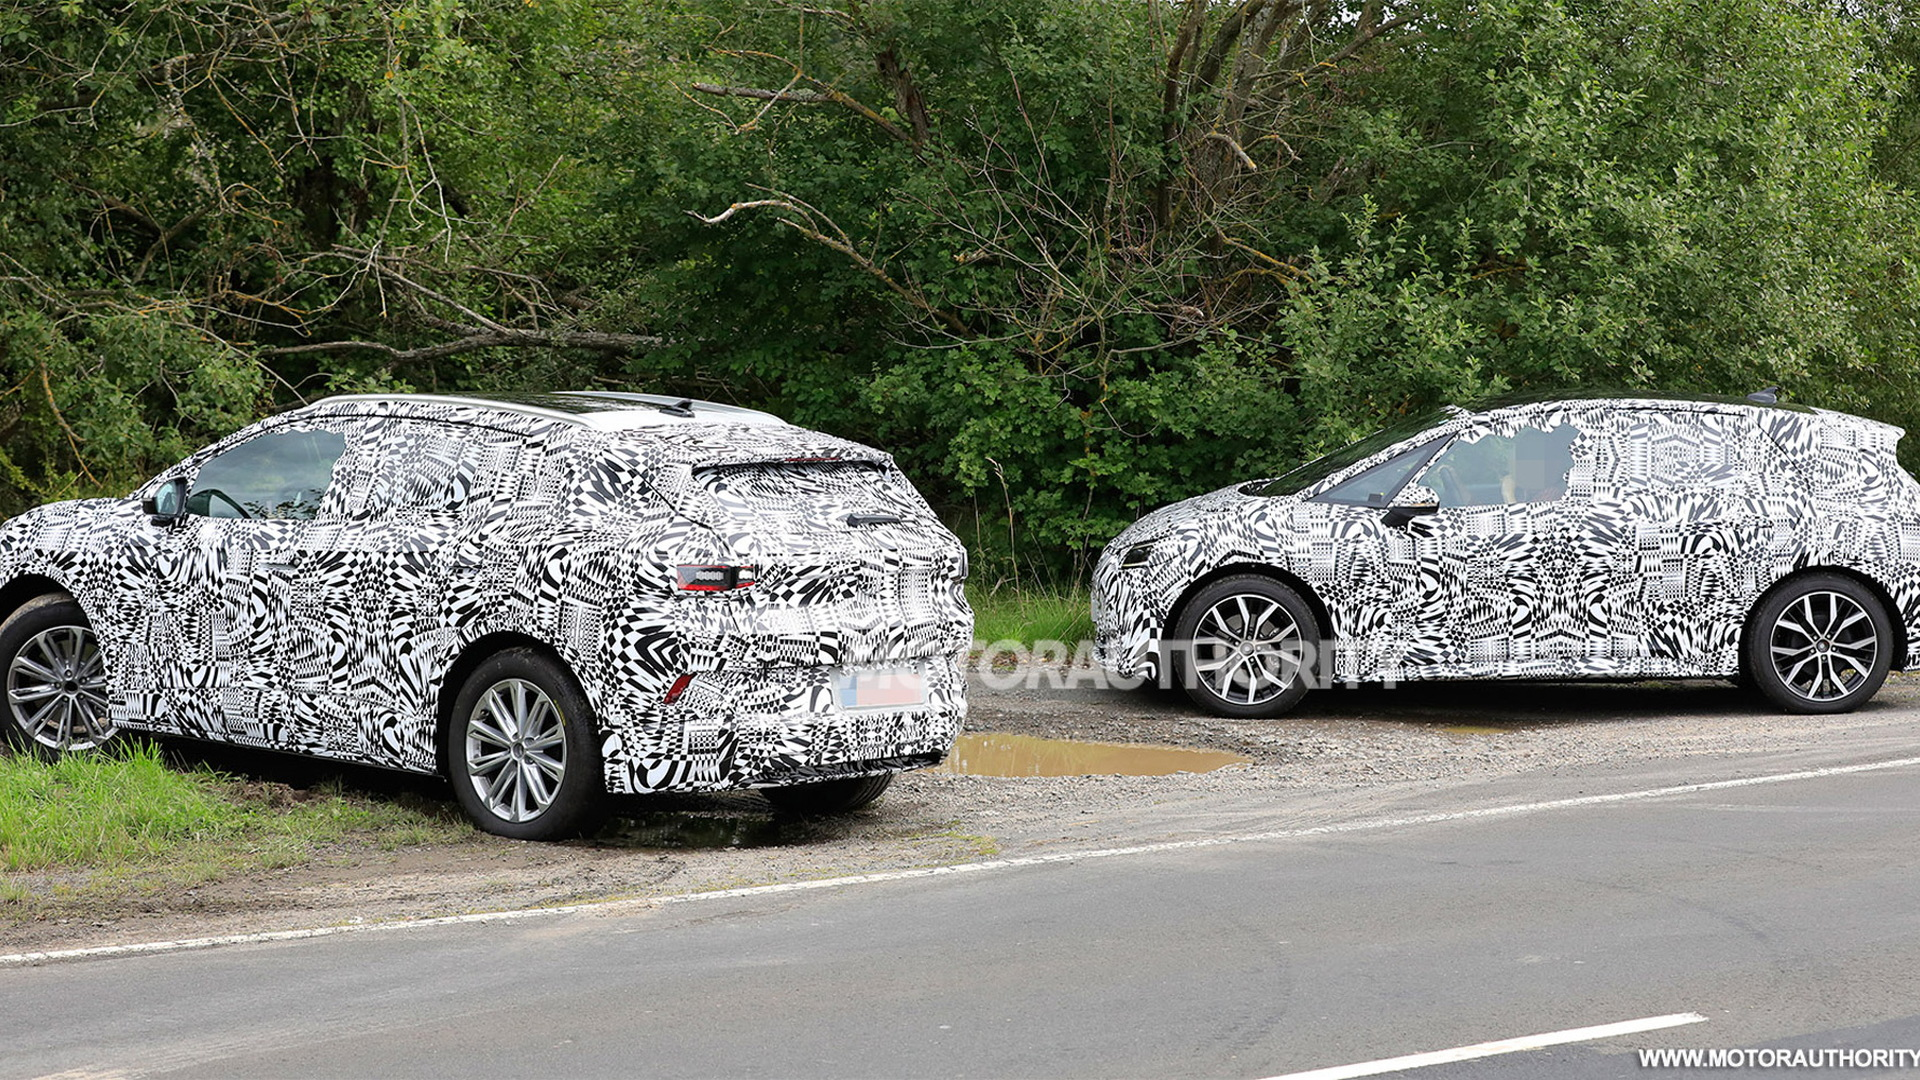 2020 Volkswagen ID 3 and 2021 ID 4 (Crozz) spy shots - Photo credit: S. Baldauf/SB-Medien